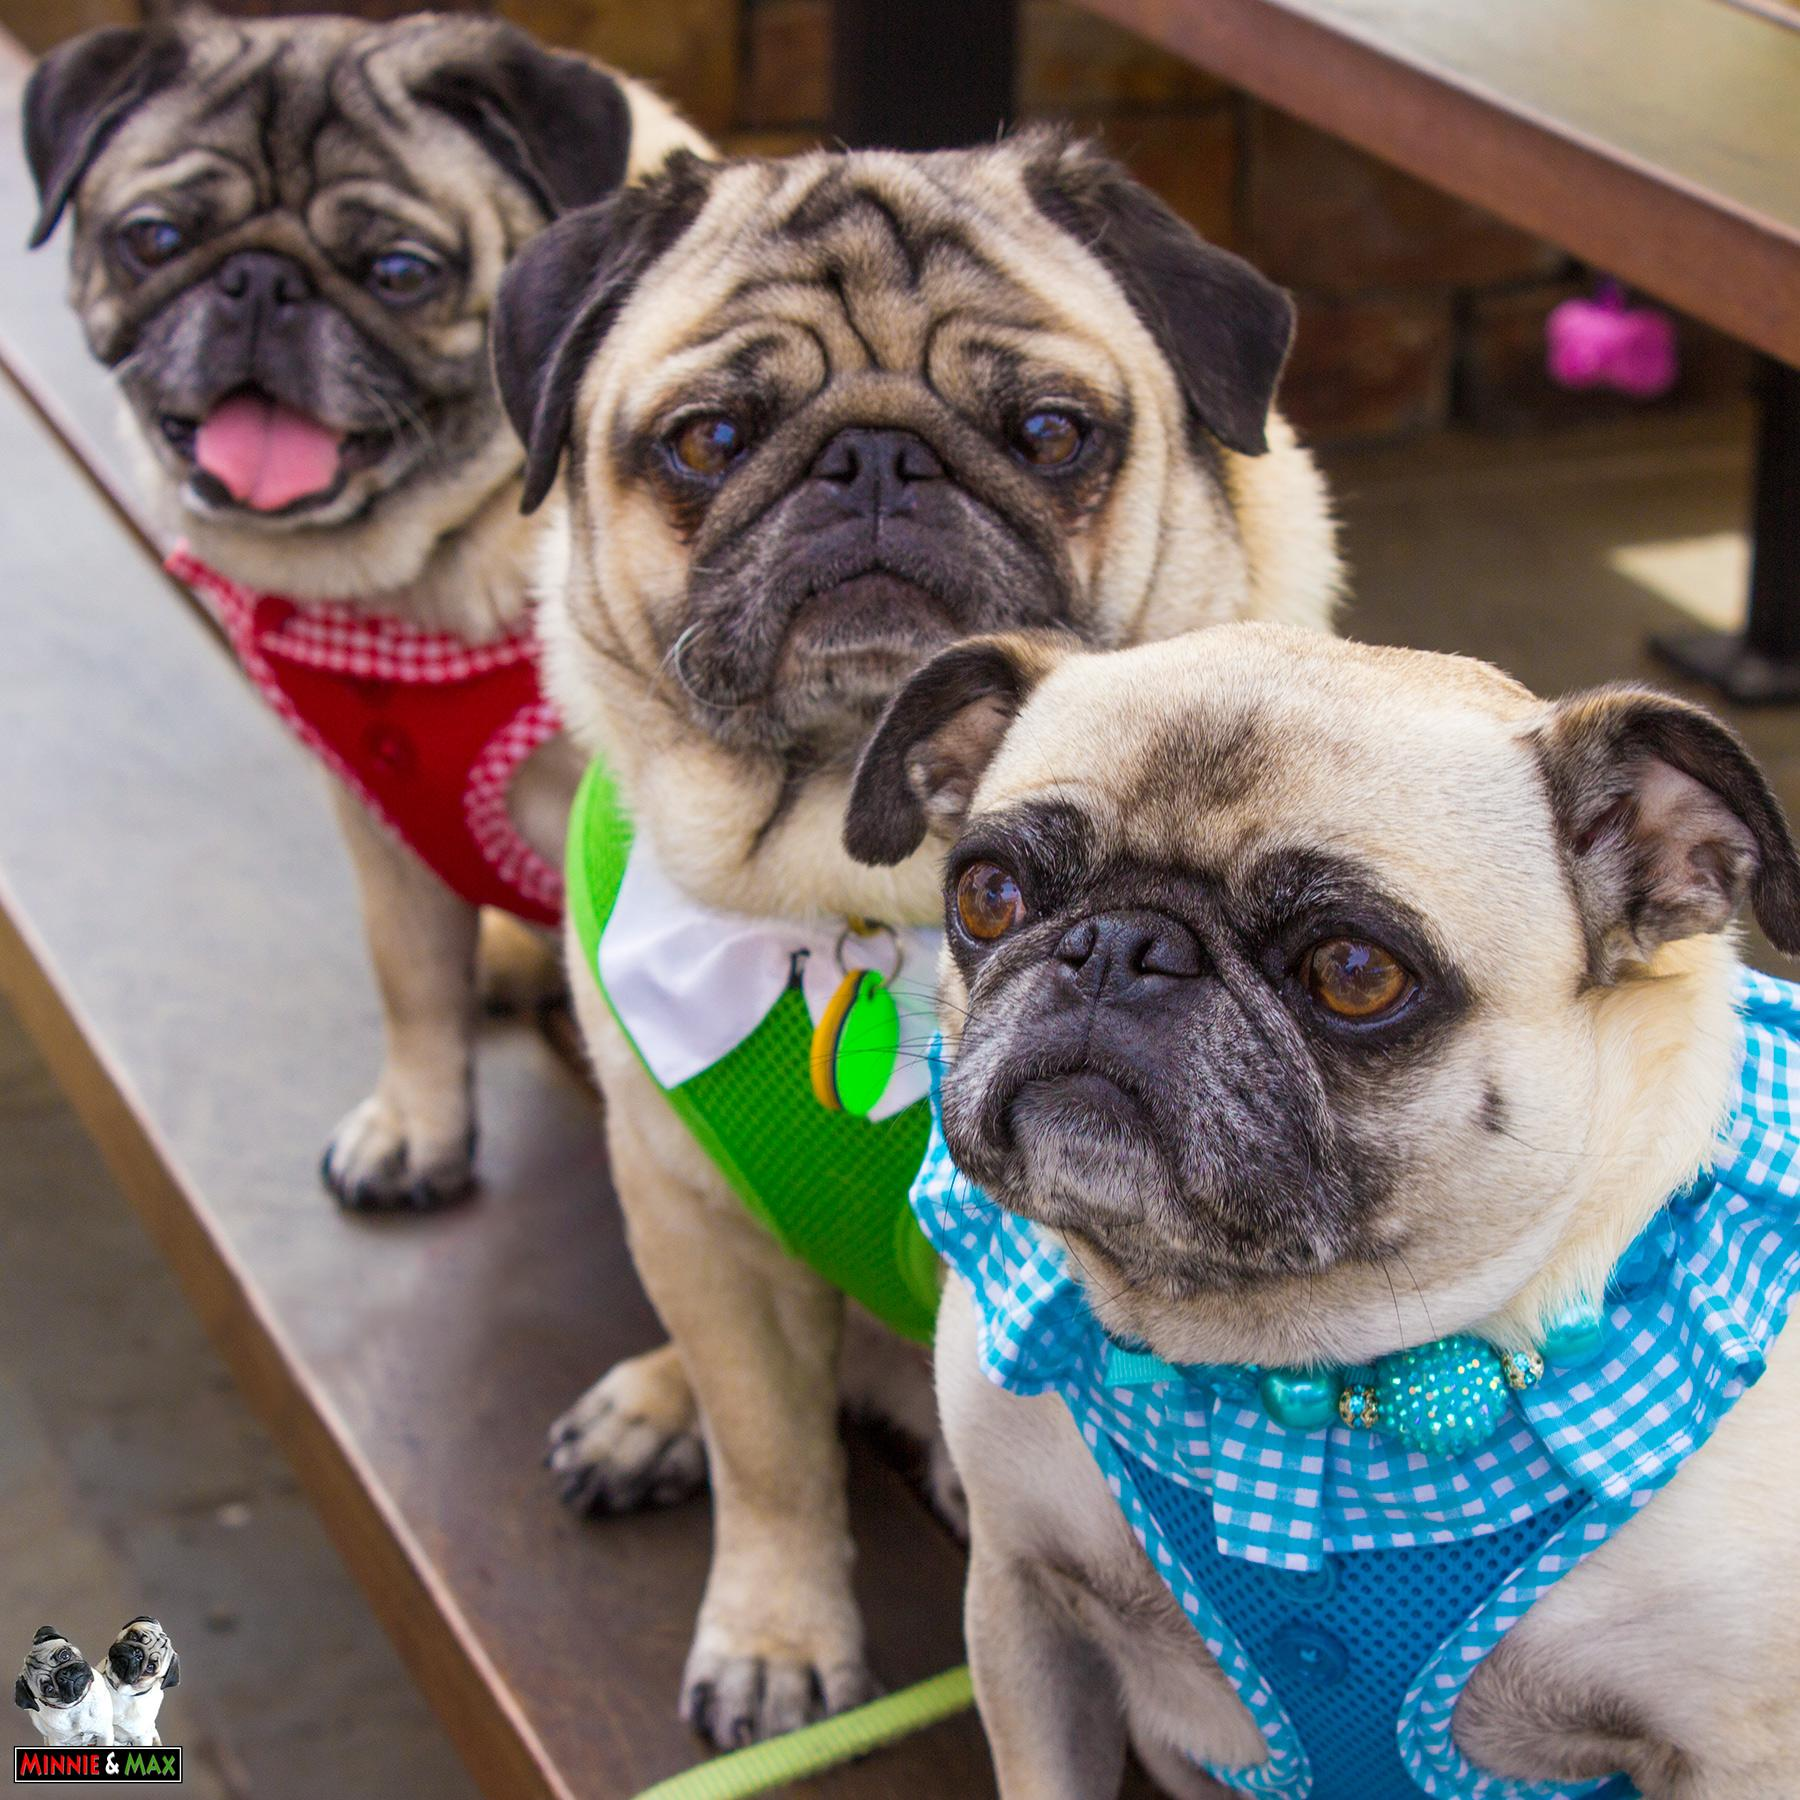 Lunch with our friend Matti the Pug. @GottsRoadside @tandcvillage #pug http://t.co/iOegdZXILR